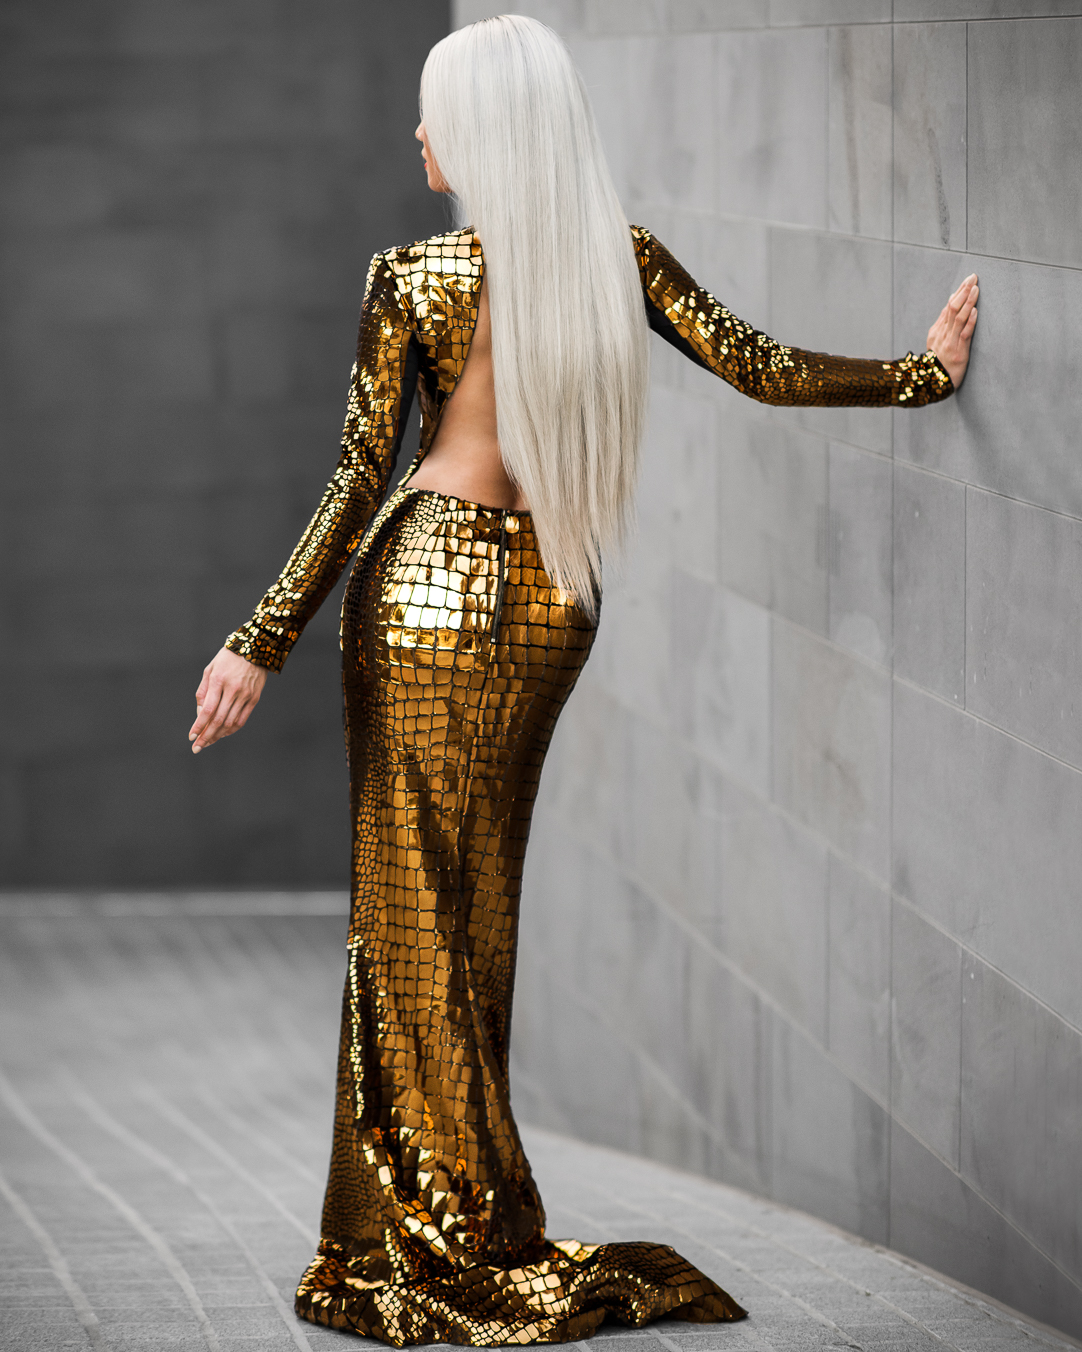 Micah-Gianneli-Freedom-Couture-Hair-Tyson-and-Peppa-Casey-Tanswell-Gold-Fashion-Editorial-Platinum-Blonde-Hair